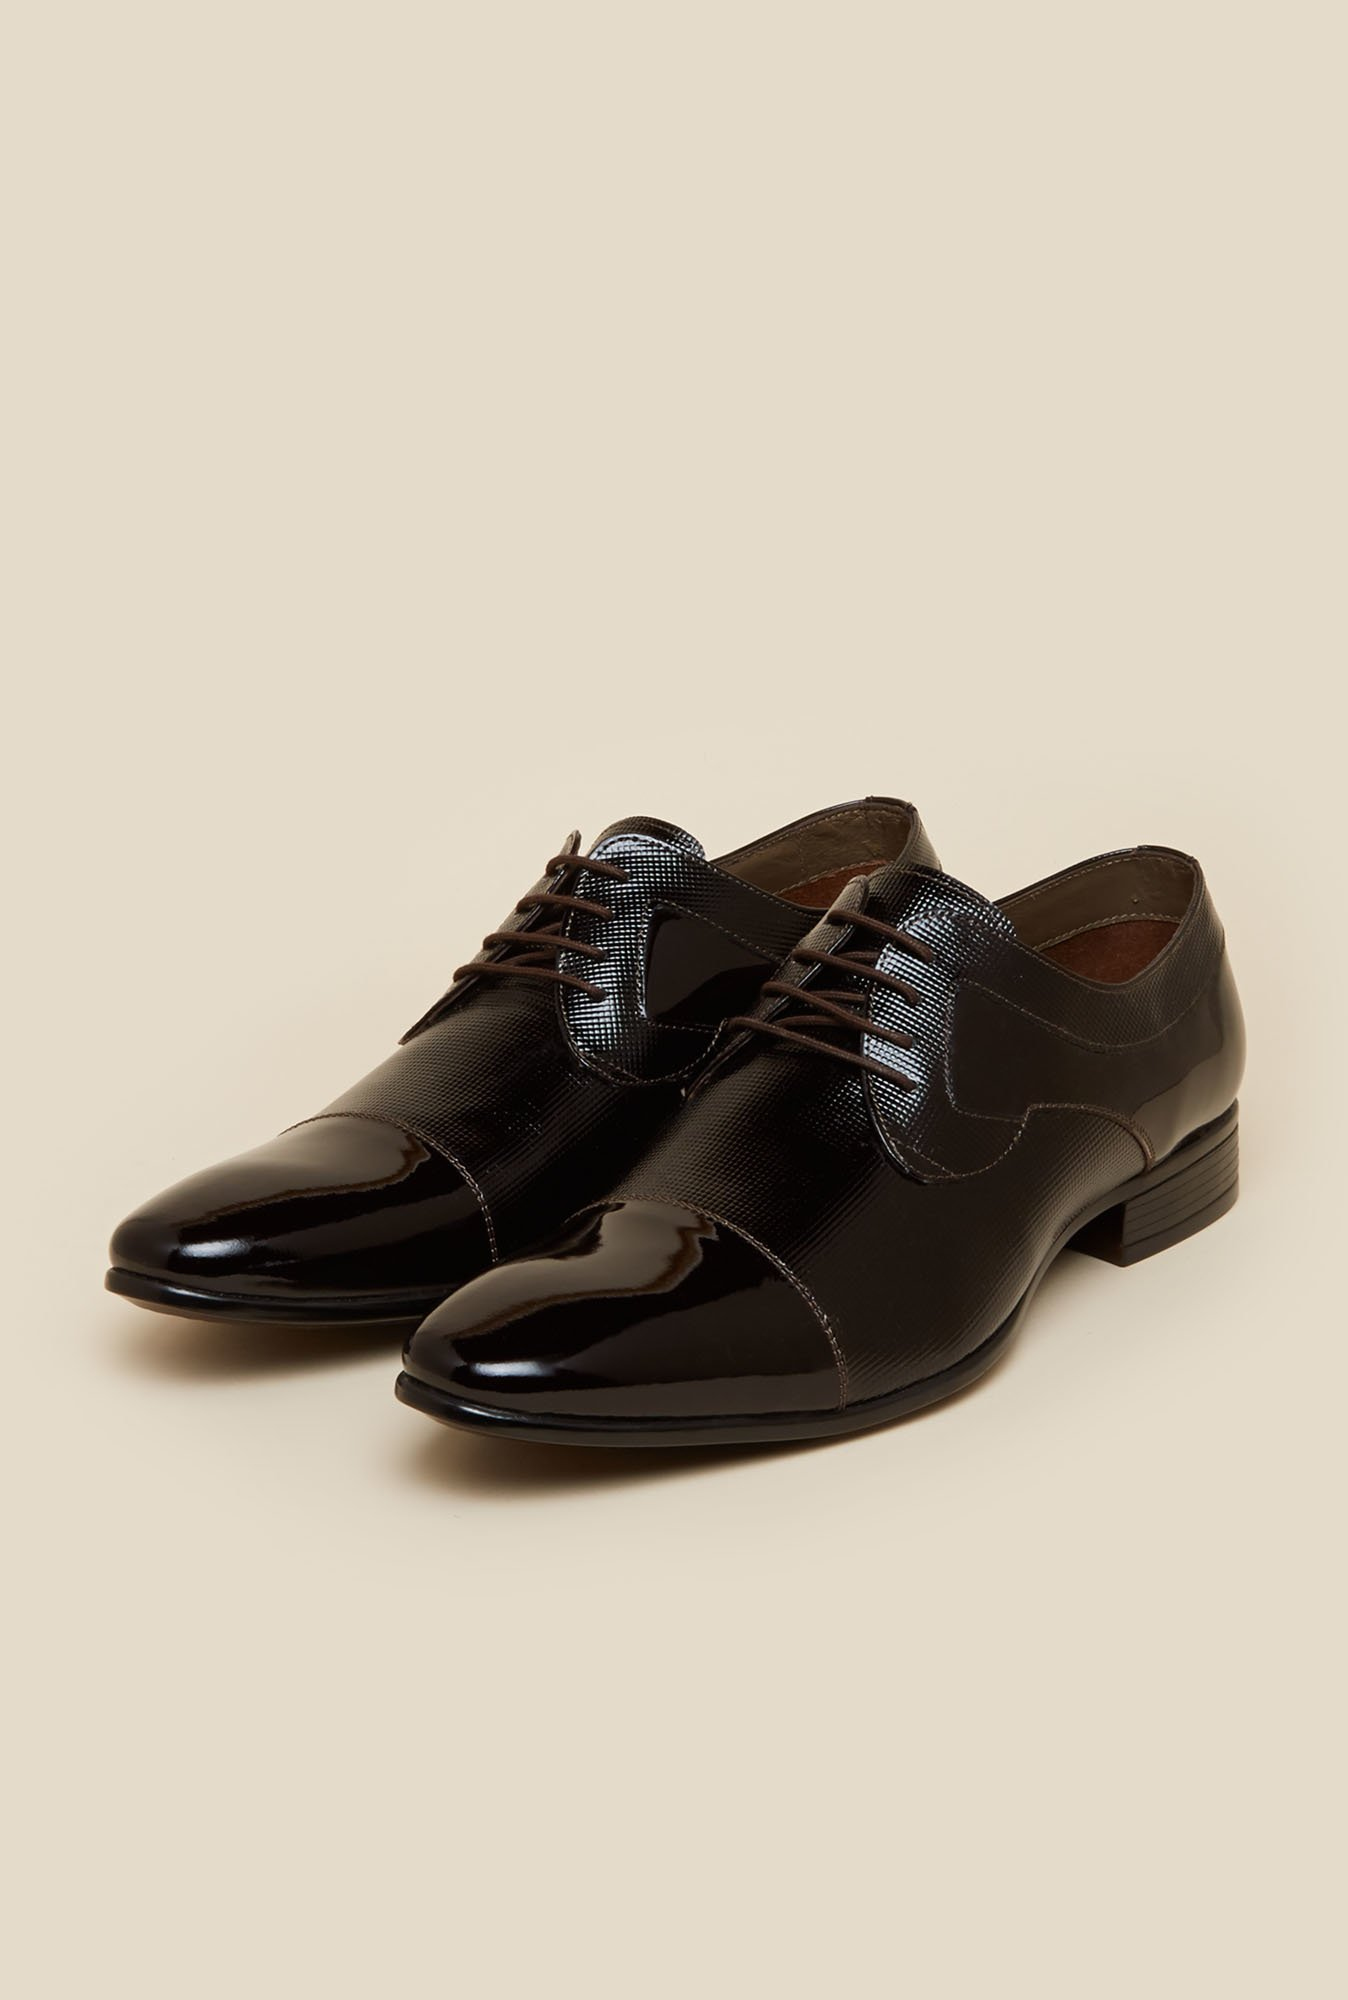 Mochi Dark Brown Formal Derby Shoes